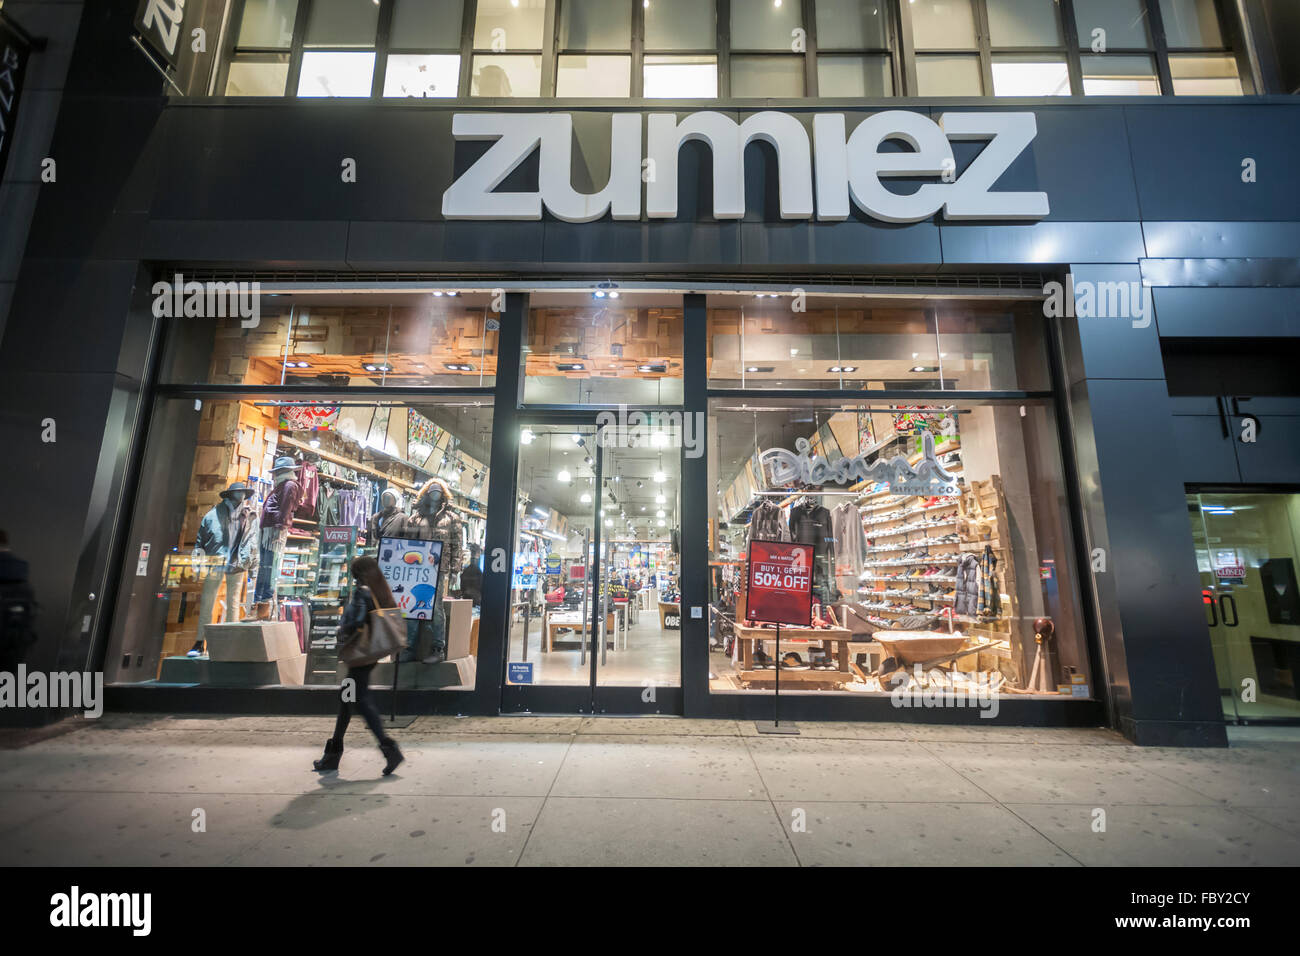 Shoppers pass a Zumiez store in Herald Square in New York on Tuesday, January 12, 2016. Zumiez announced that it - Stock Image